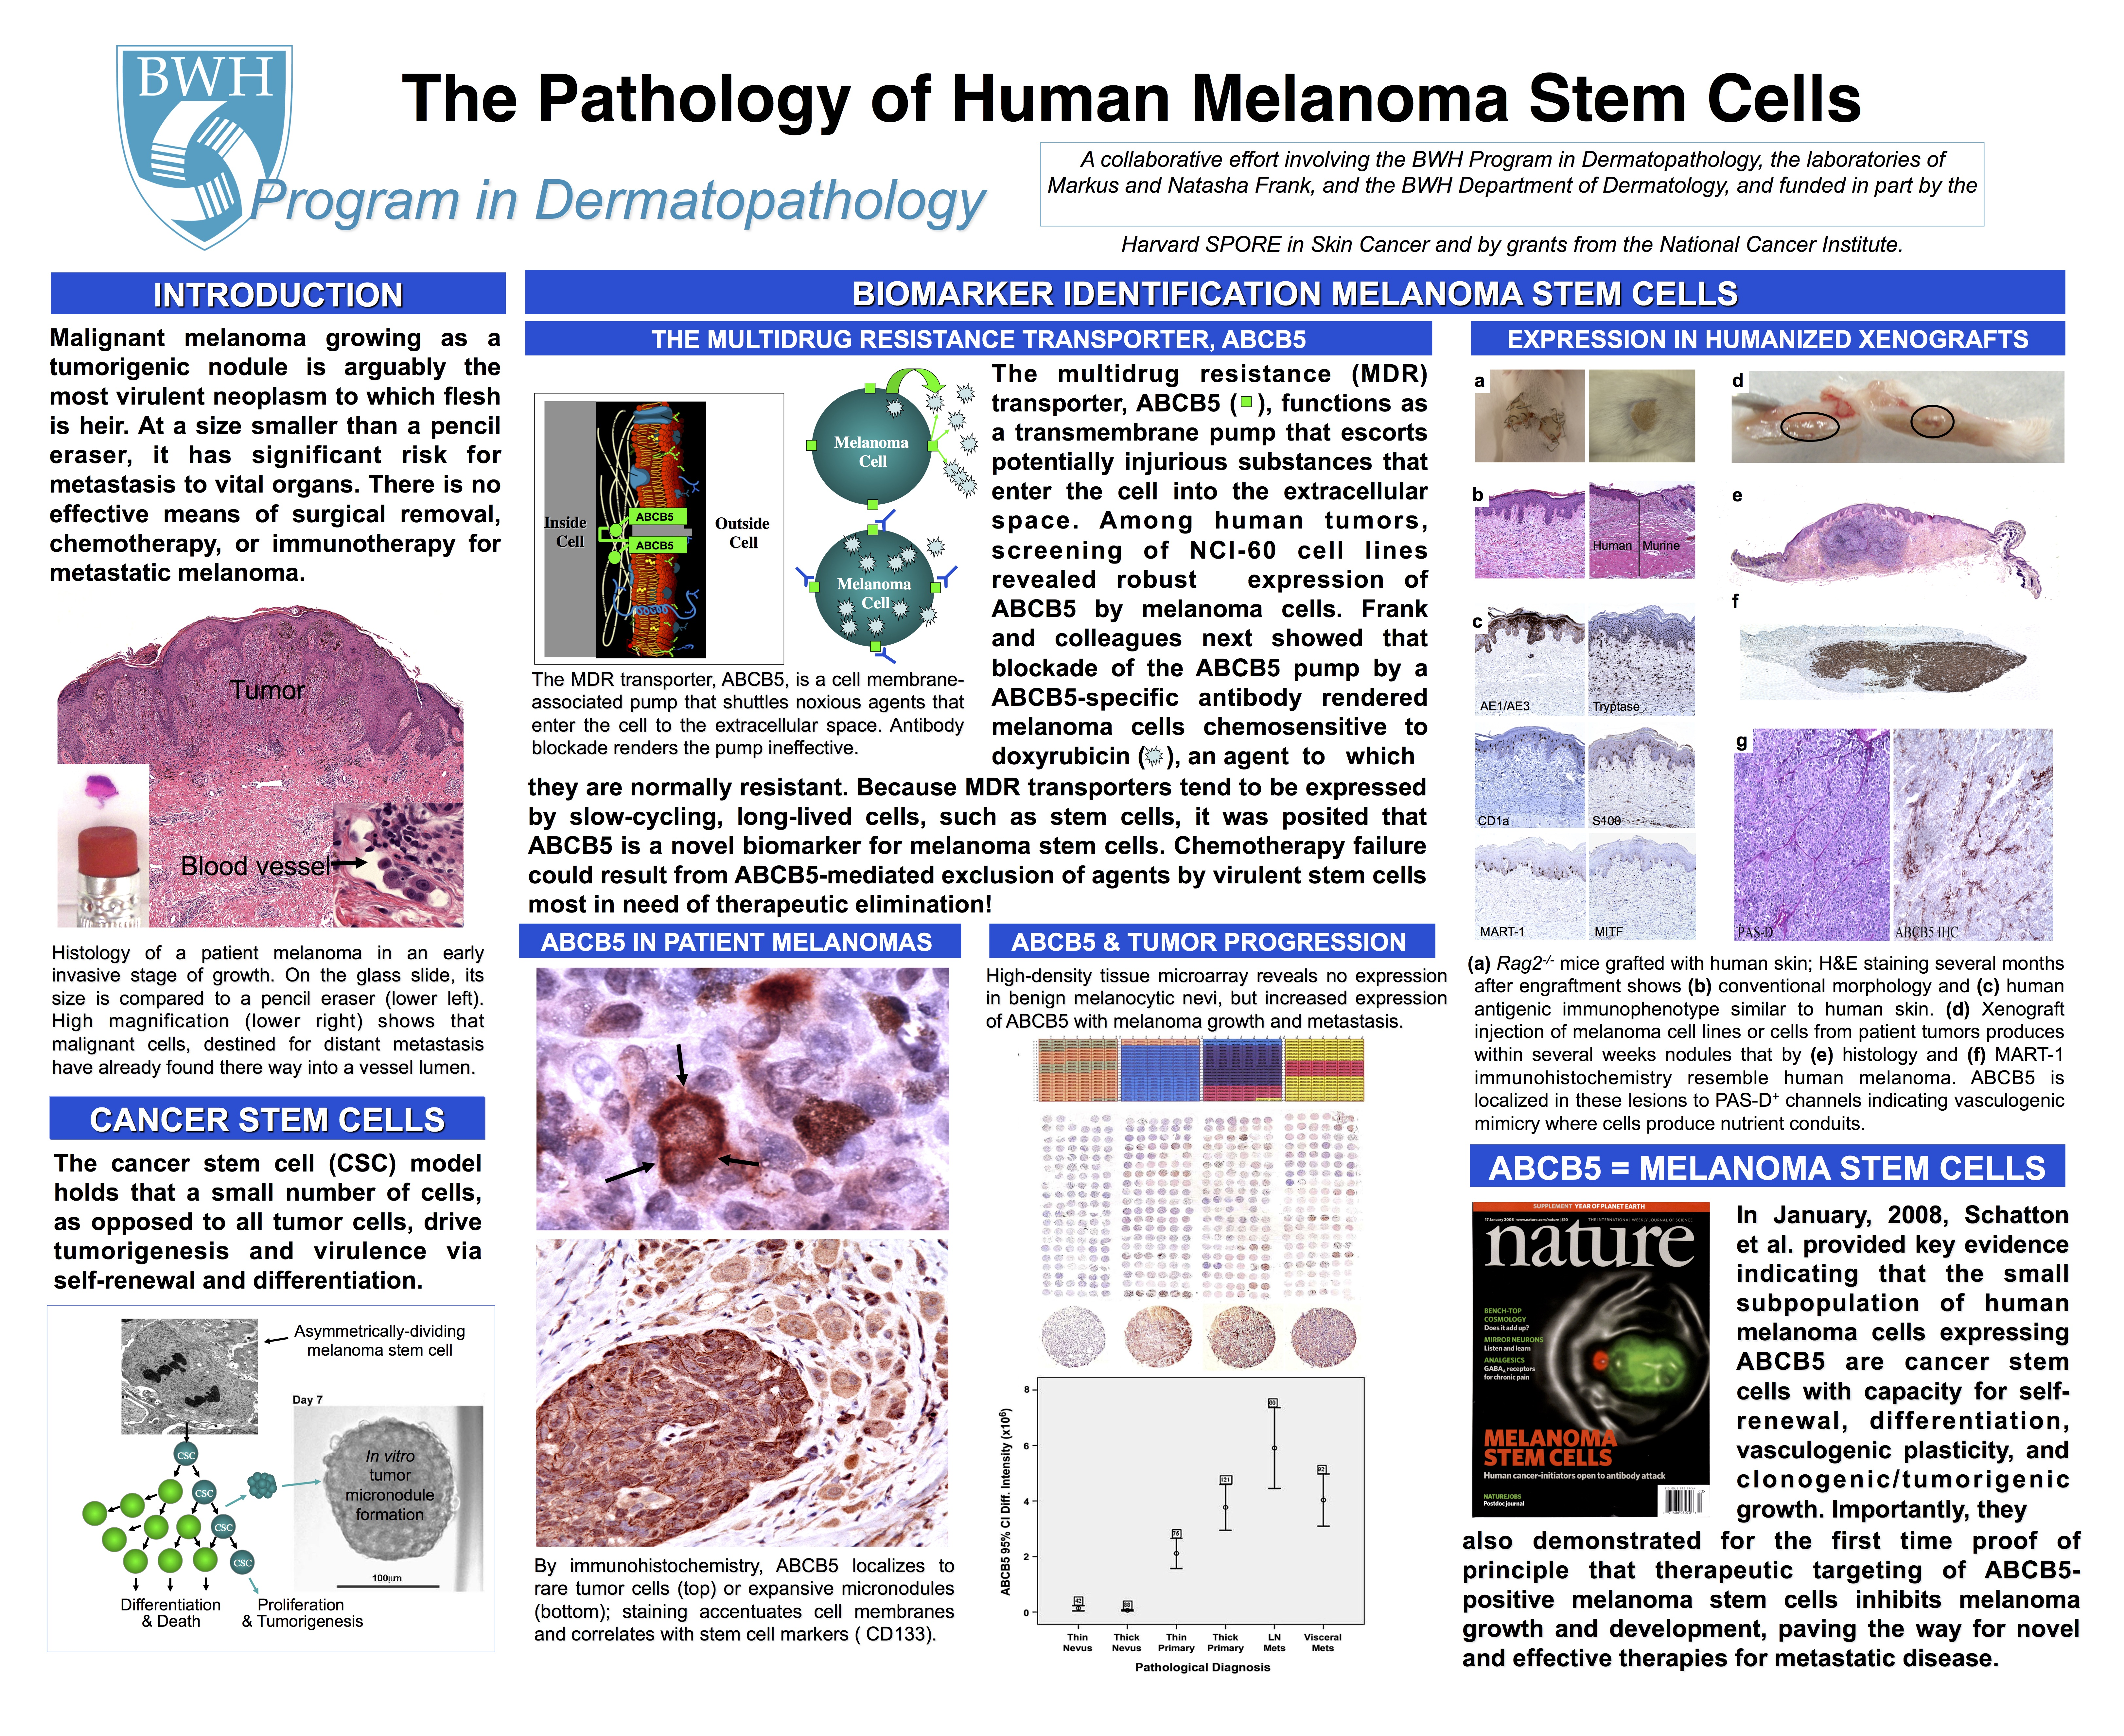 Stem Cell Poster 1 final